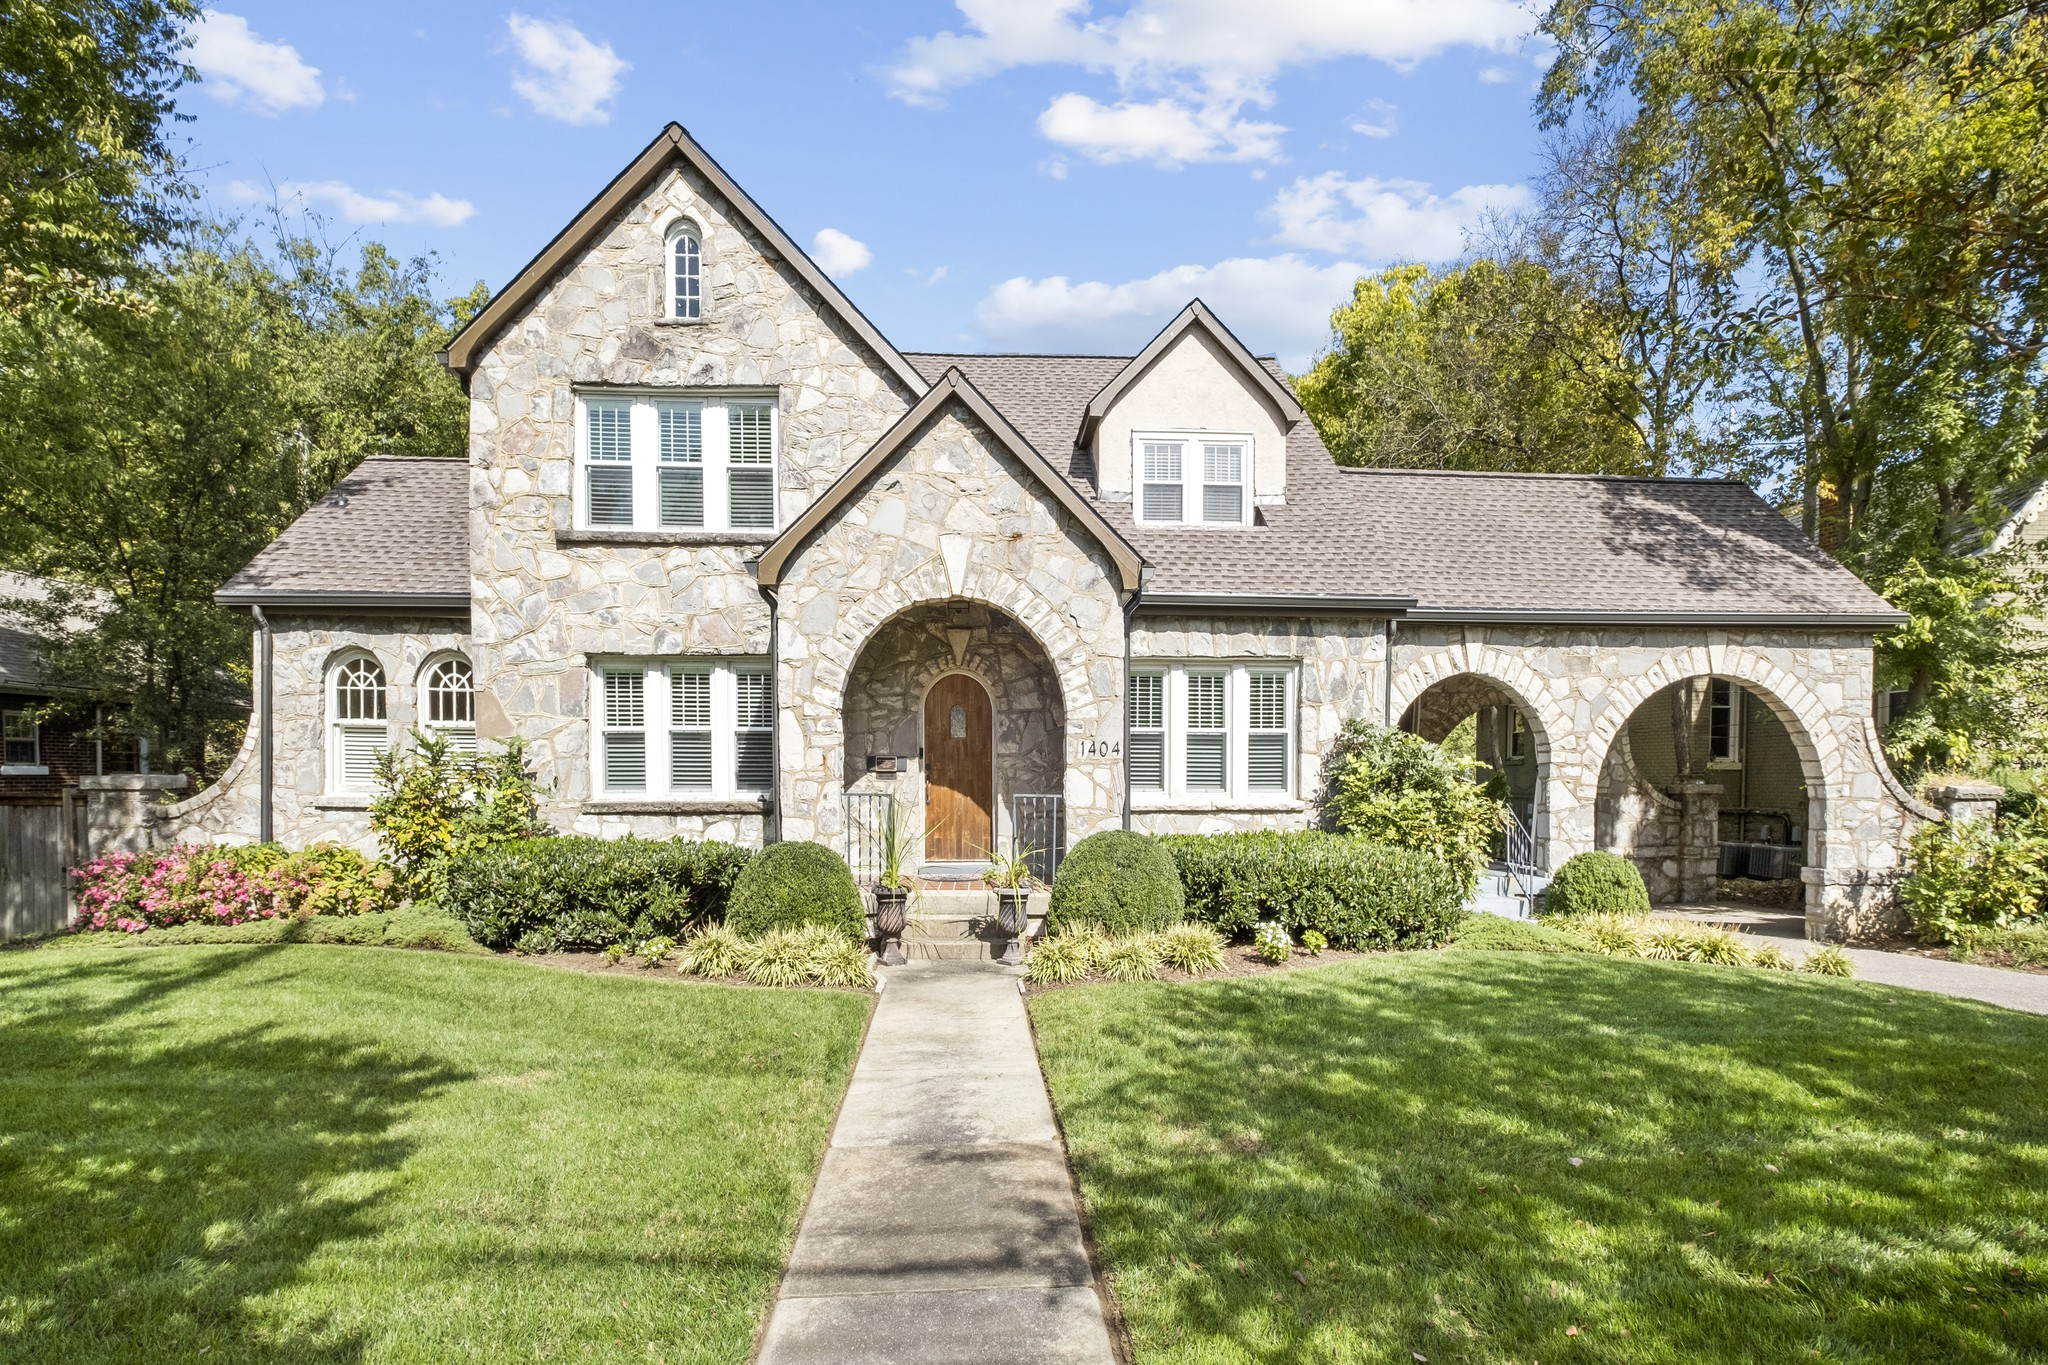 Totally renovated and expanded picture-perfect stone Tudor home with FABULOUS new pool, stone fireplace, grill & guest house. Main or Upper Level Master Options. Open living room w/large multi-use sunroom. Upscale kitchen and den overlooking covered wraparound porch deck & pool. Charming stone side dining porch. RARE double lot with terrific side and backyard.  Walk to Music Row, VUMC, the Roundabout restaurant and the Gulch. Great mud room entrance. New roof in 2020. Newer HVAC system,